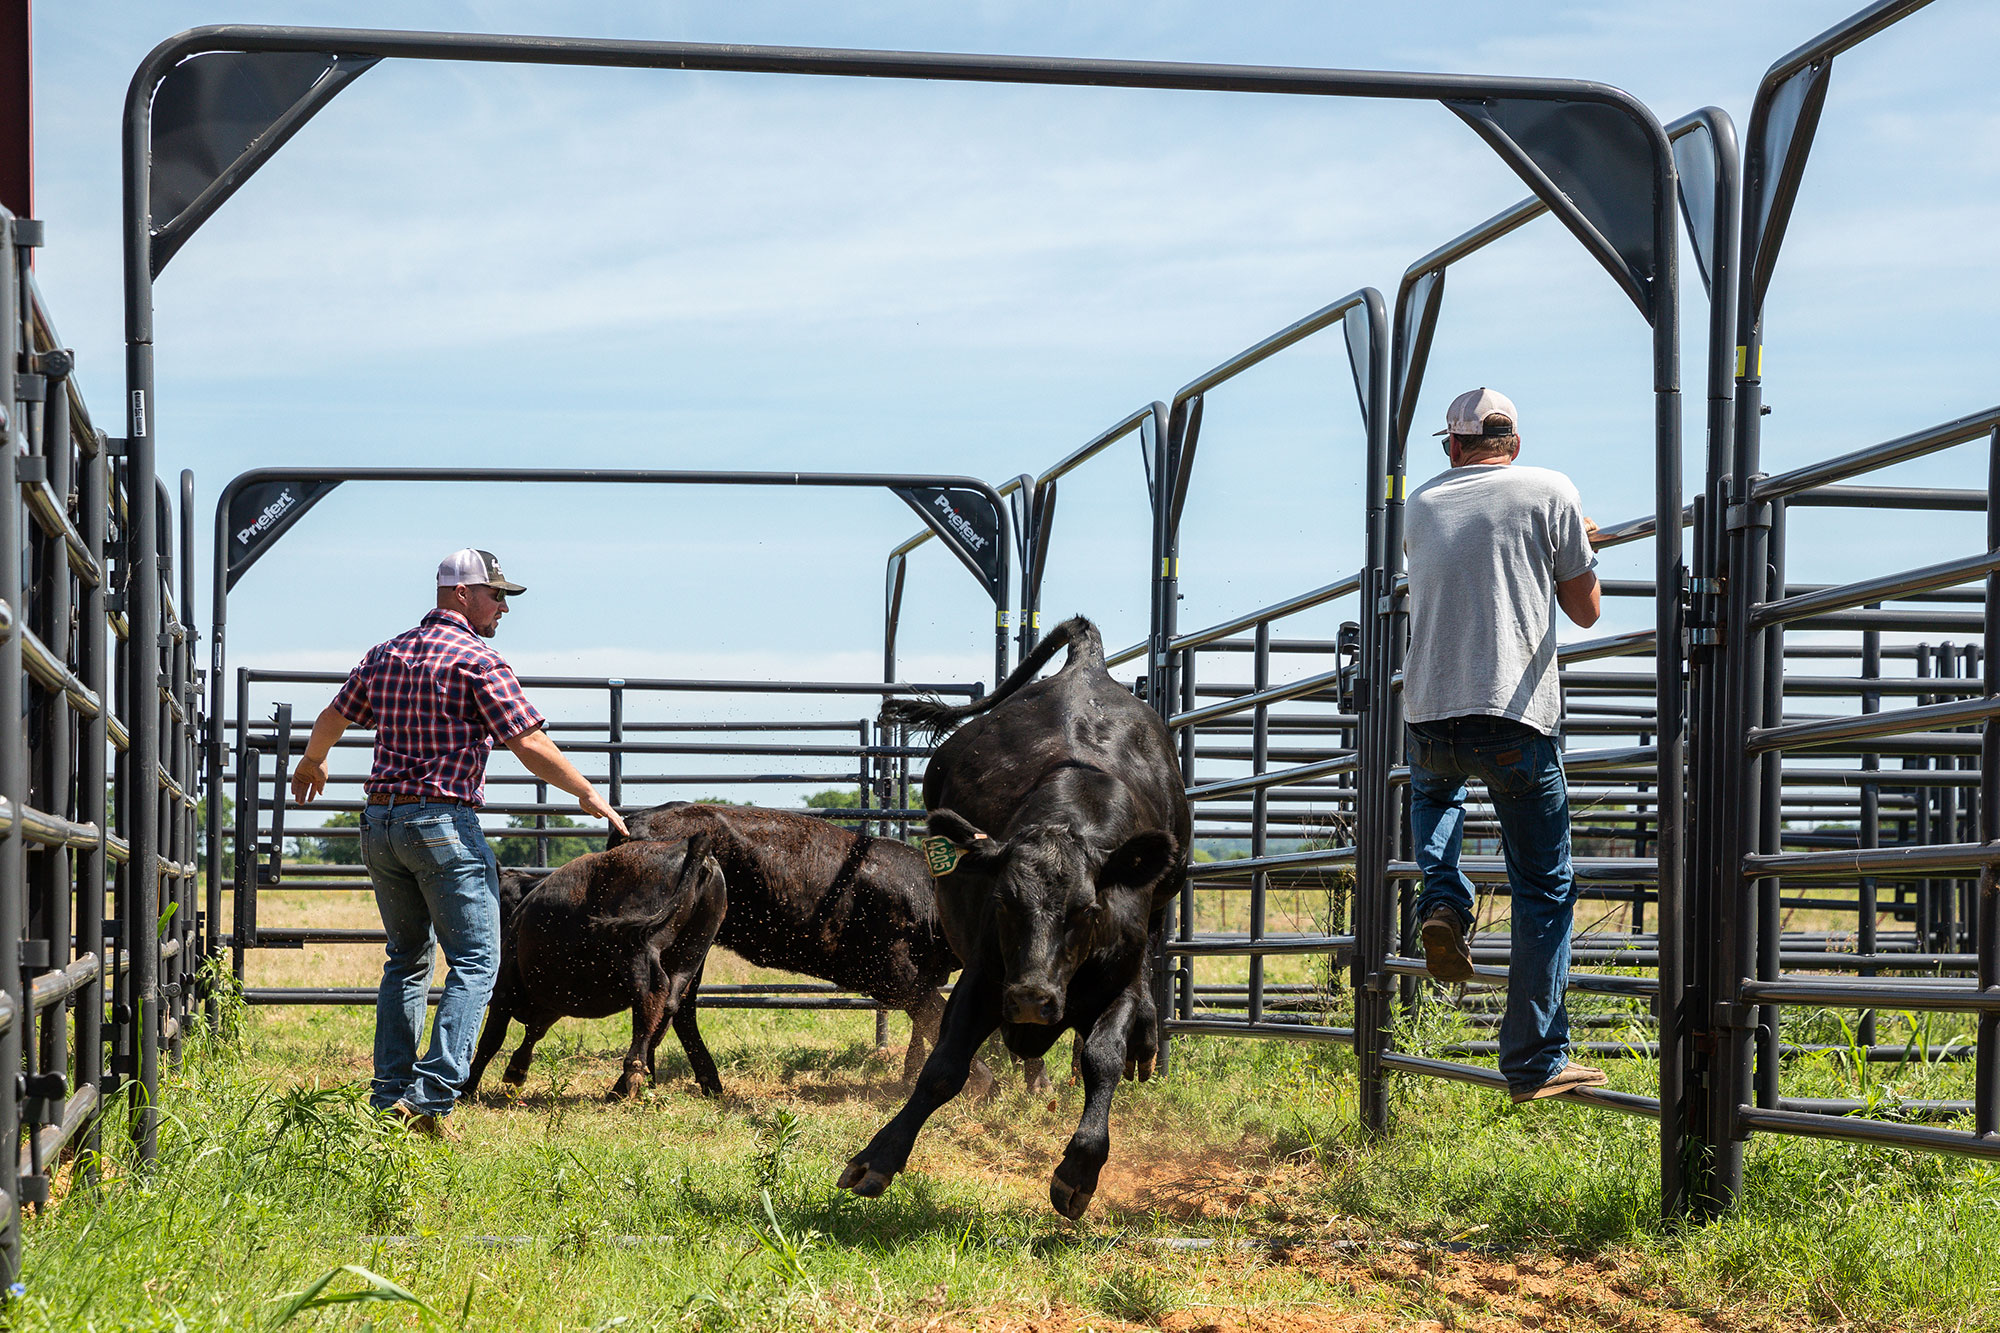 Top 12 Things to Consider Before Building a Cattle Handling Facility